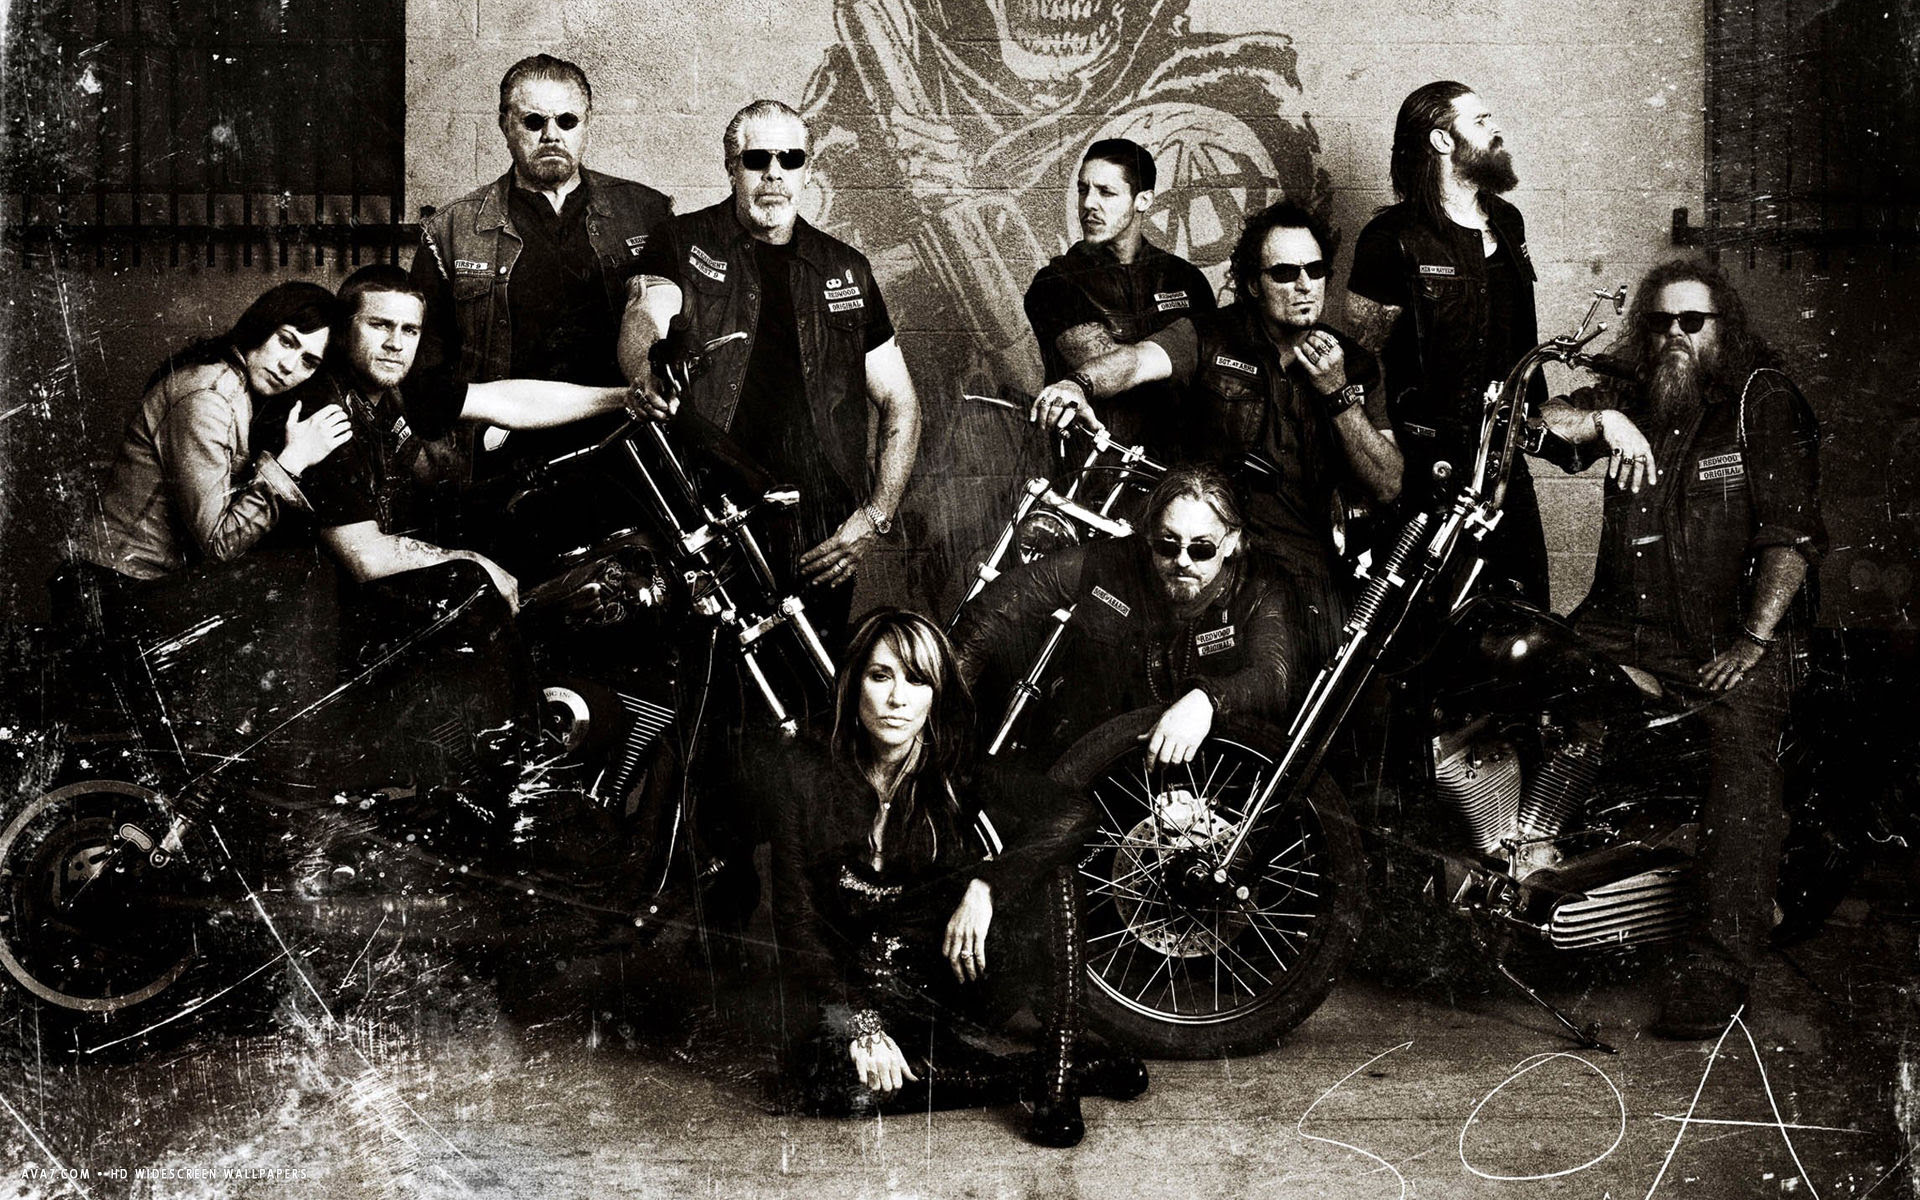 Sons Of Anarchy Tv Series Show Hd Widescreen Wallpaper Tv Series